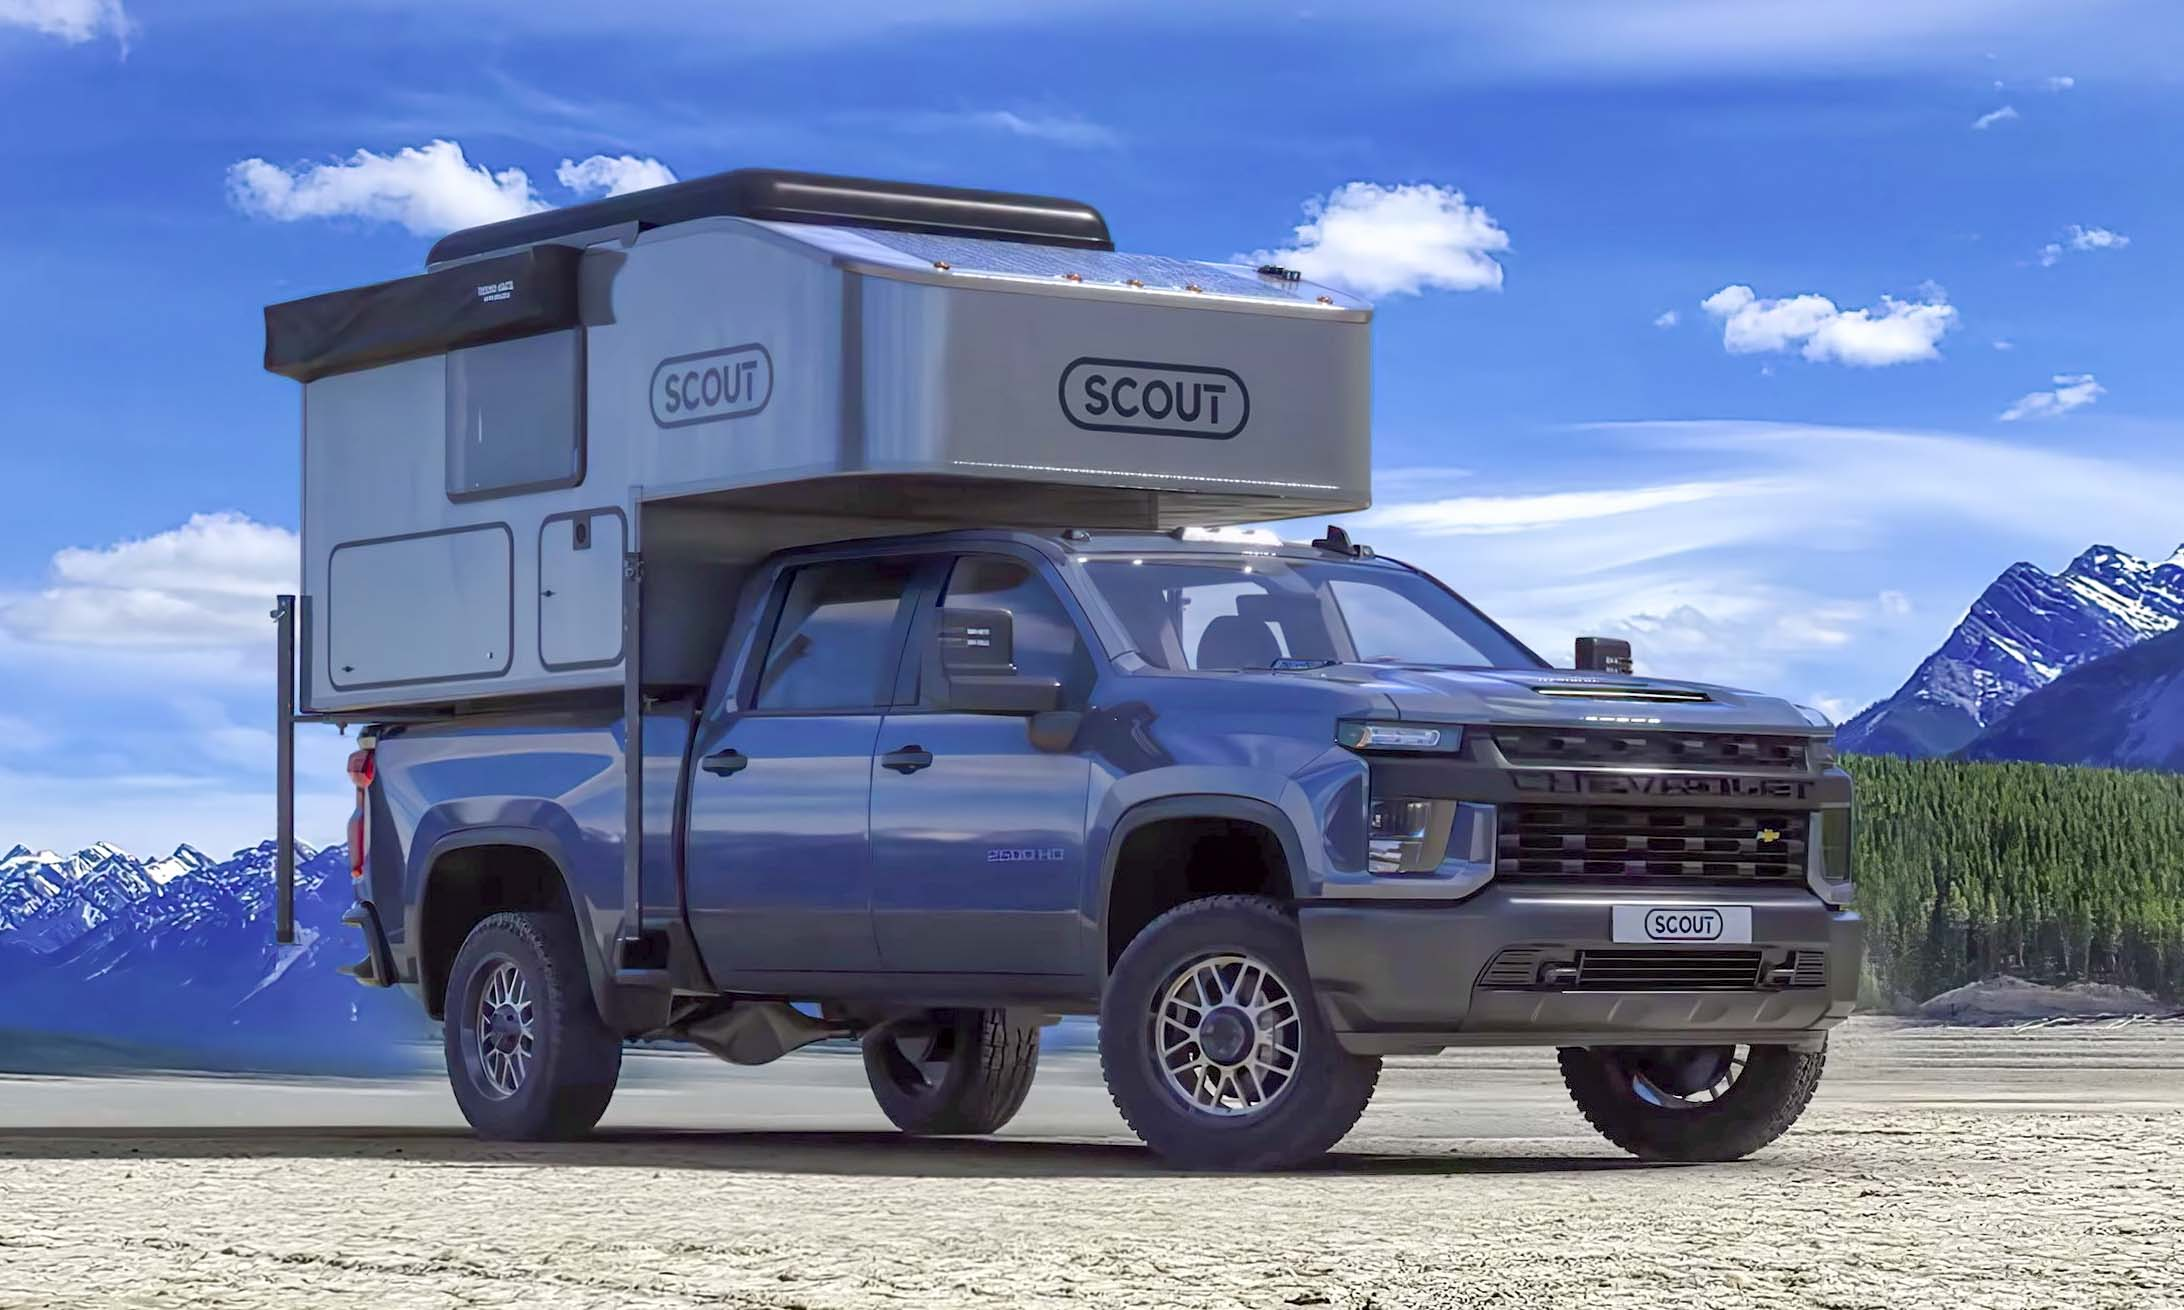 Amazing Truck Campers Turn Pickups Into Instant RVsnbsp